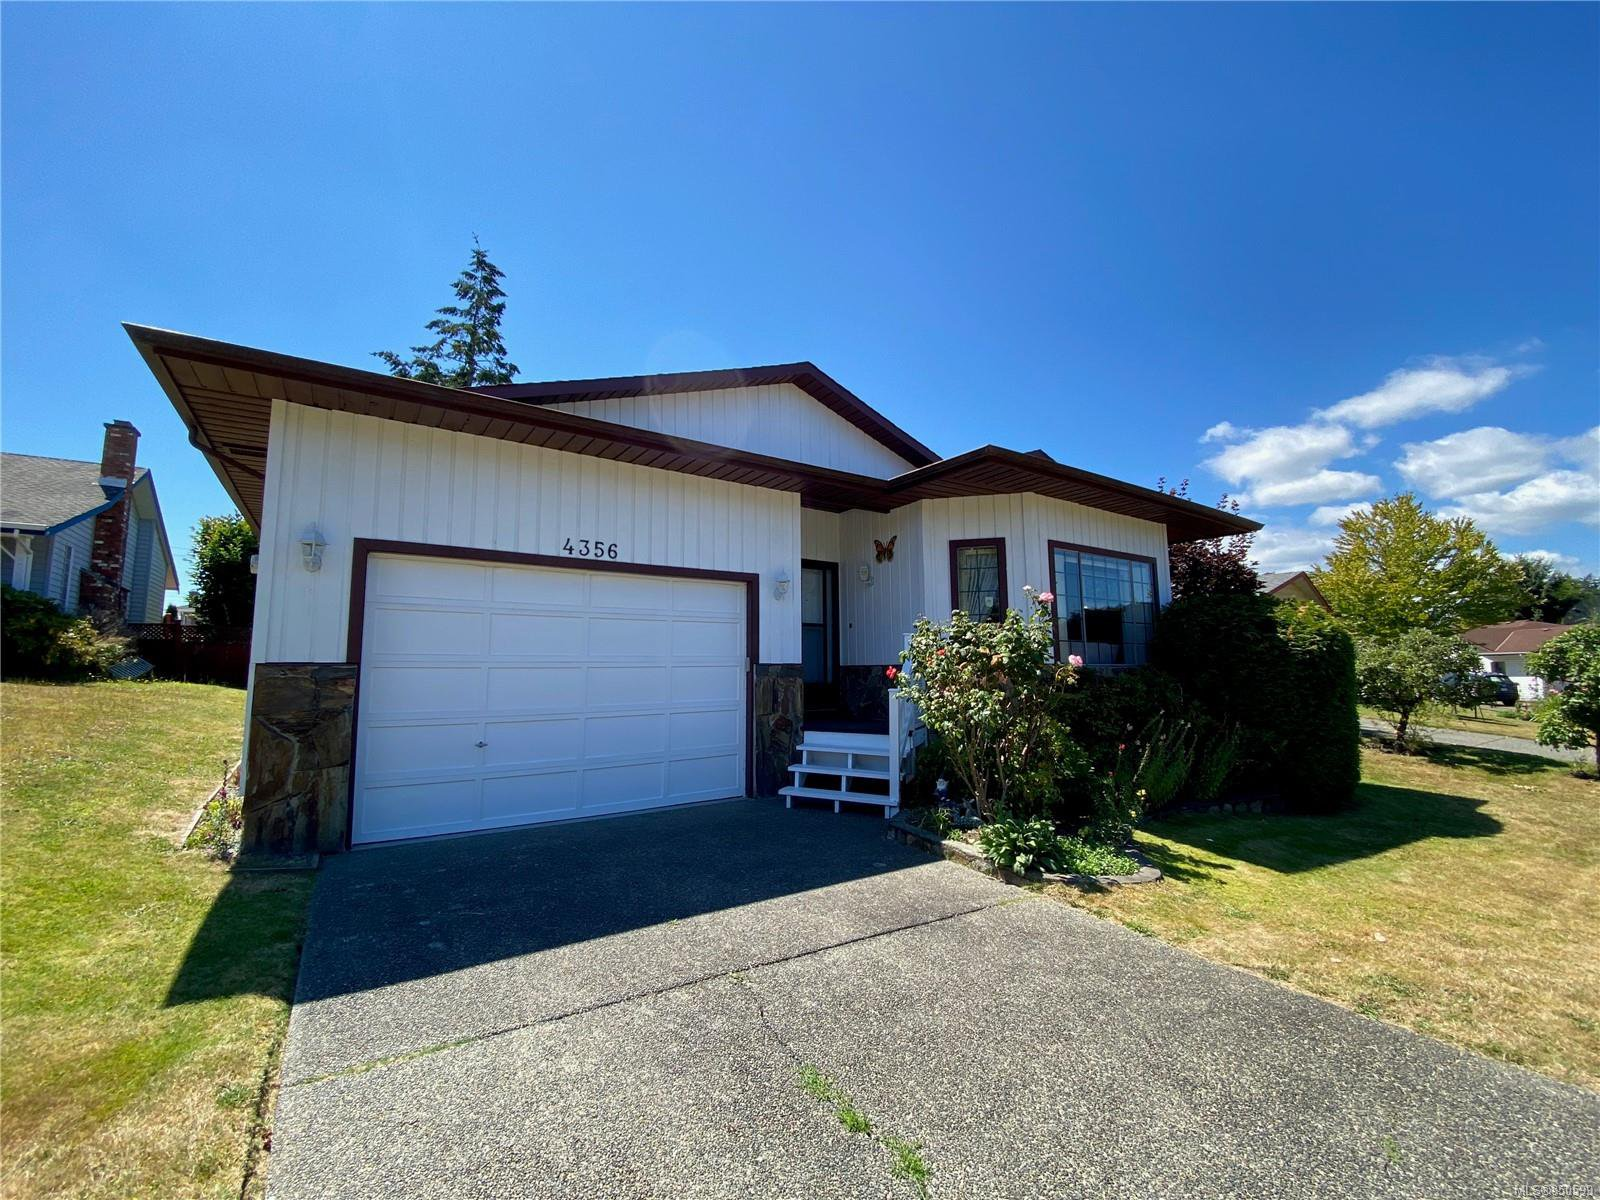 Main Photo: 4356 Vanguard Pl in : SW Royal Oak Single Family Detached for sale (Saanich West)  : MLS®# 850599